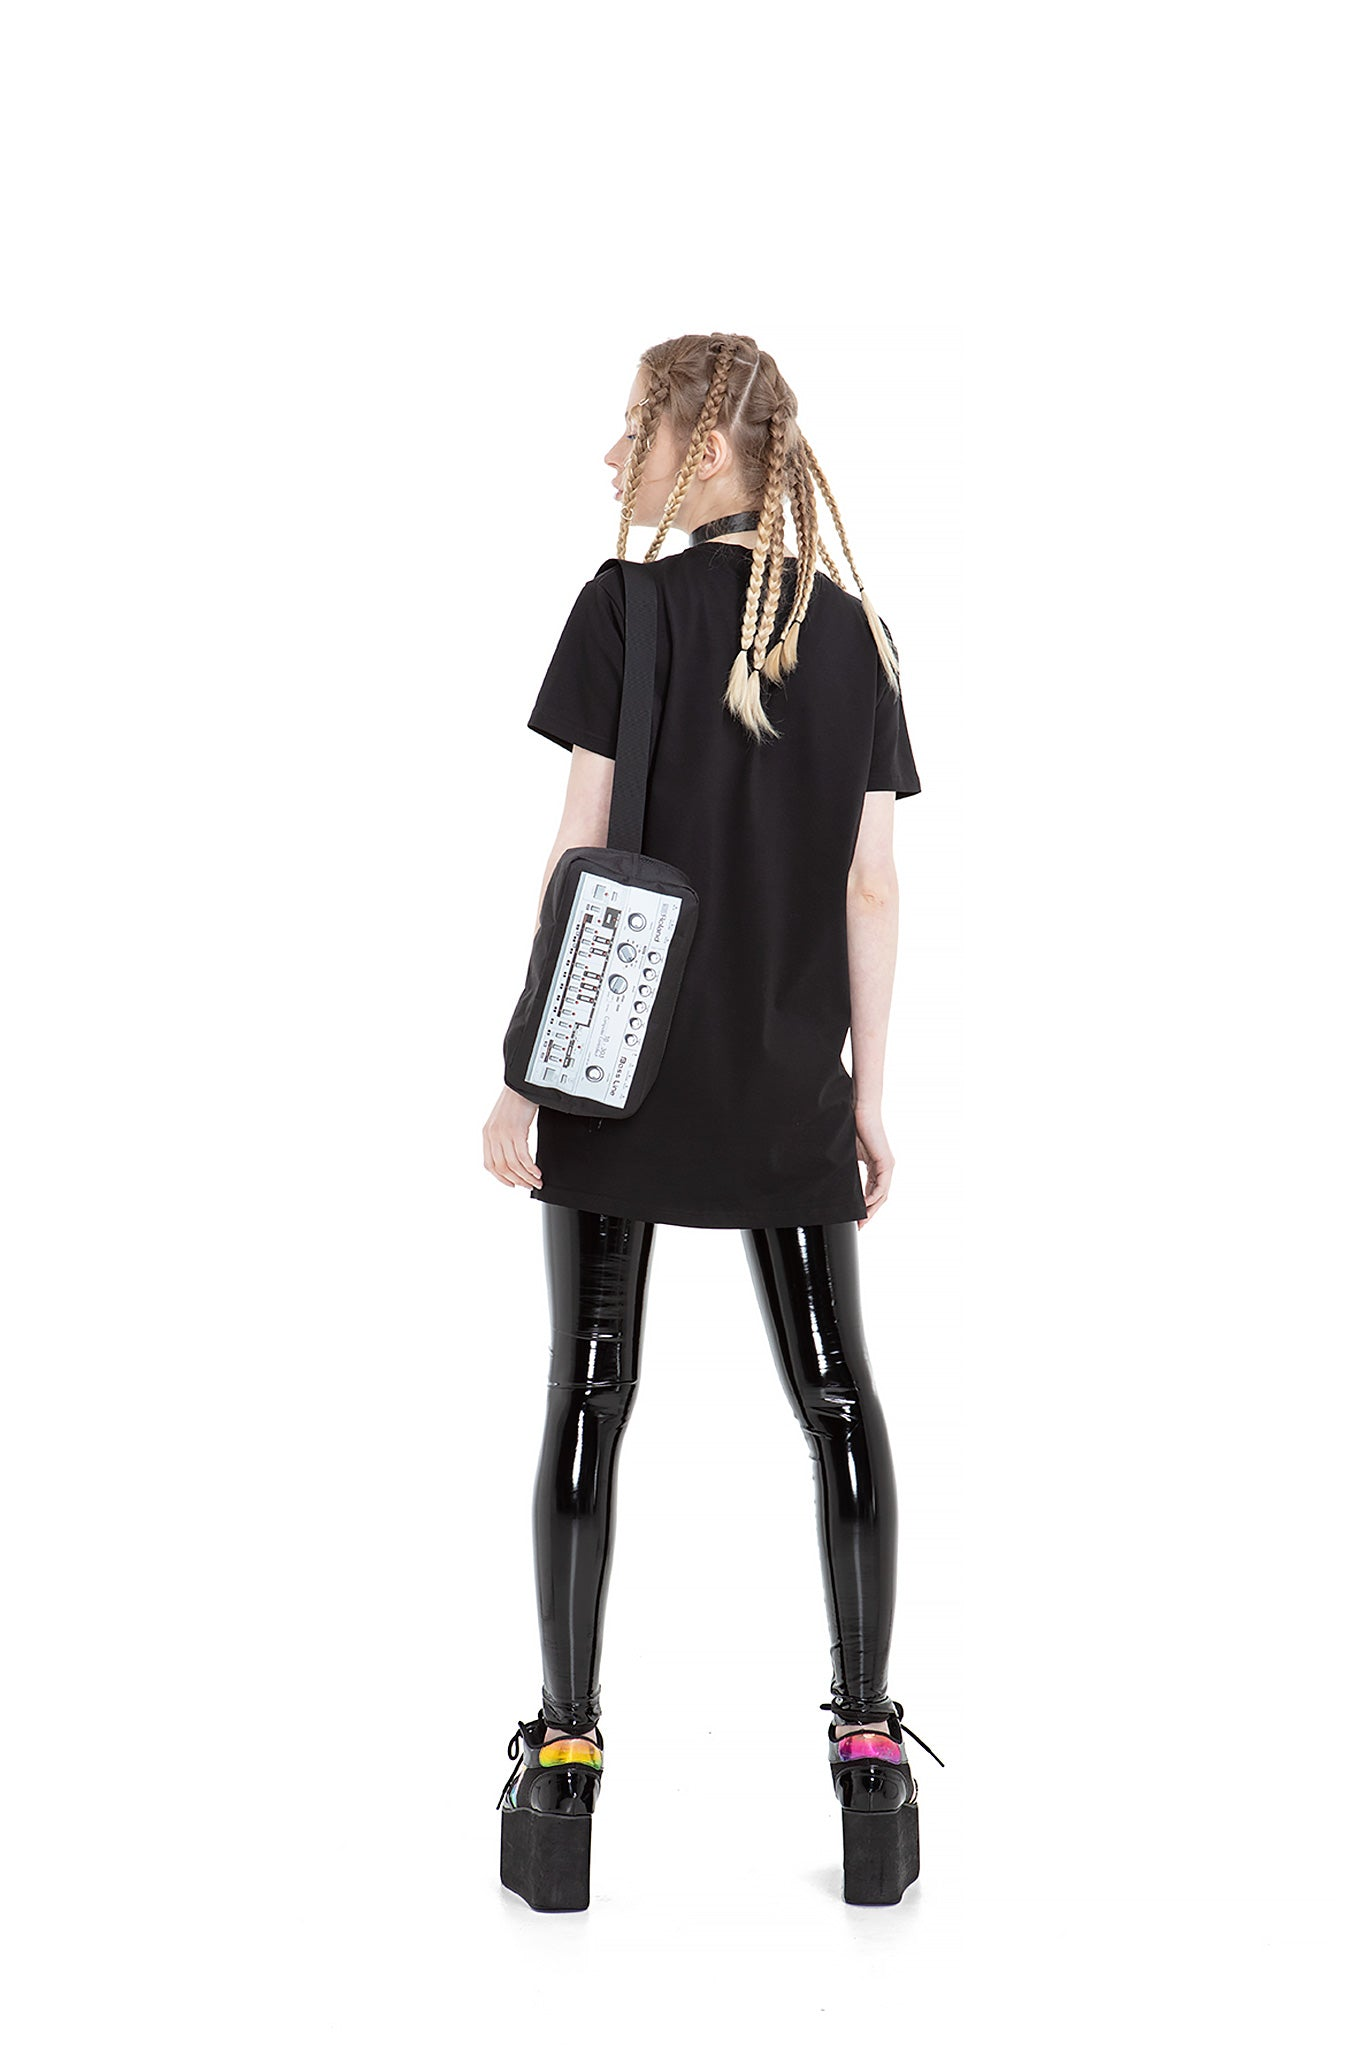 Synth crossbody bag.